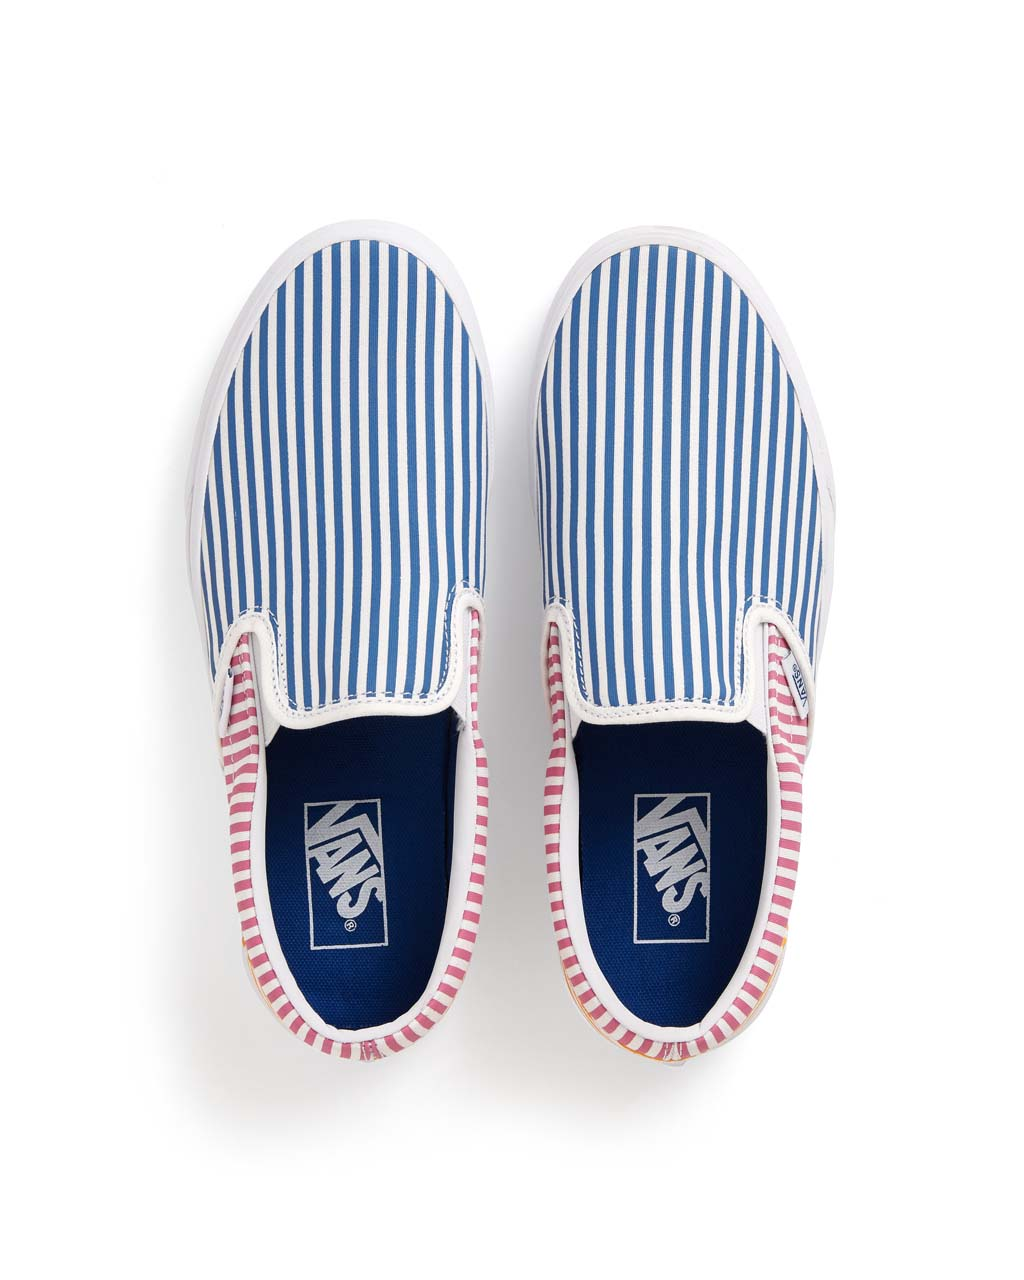 08c29aa1f0 Classic Slip-On - Deck Club Stripes by vans - shoes - ban.do